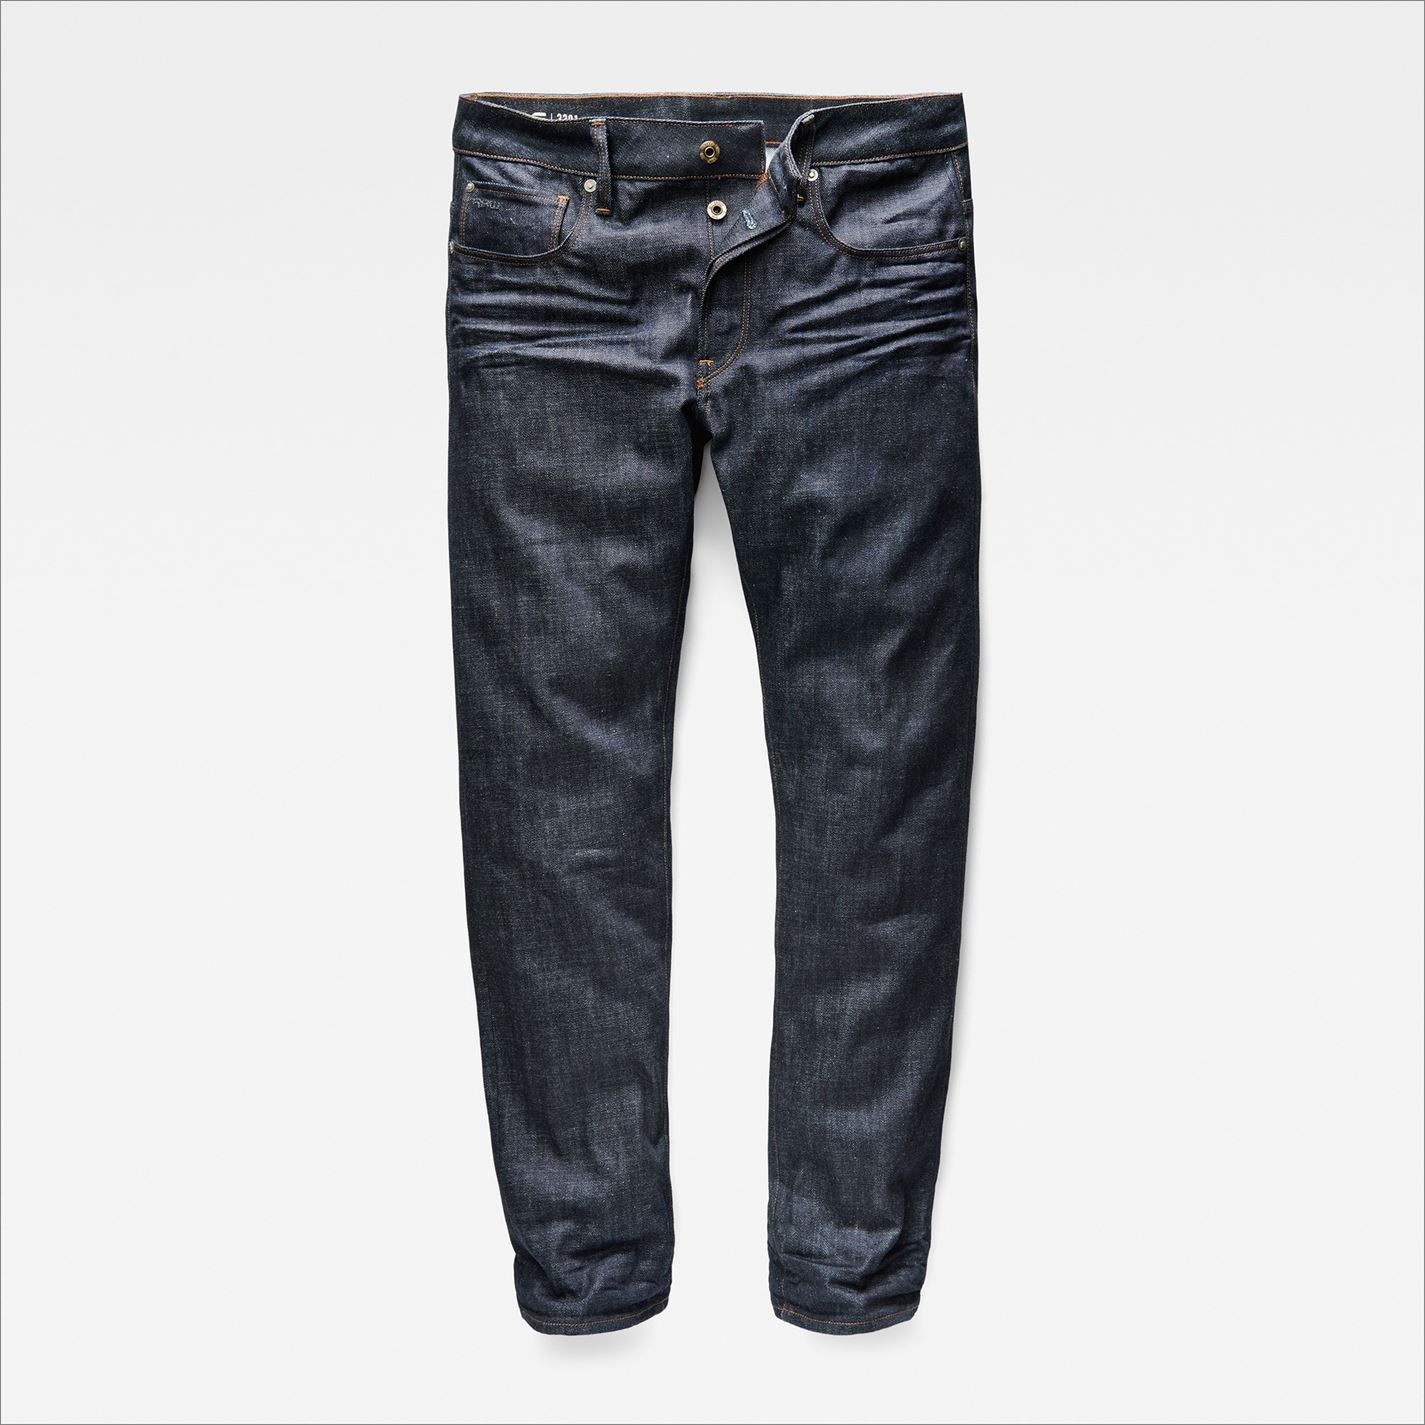 G-Star-Mens-3301-Jeans-Straight-Denim-Trousers-Casual-Pants-Bottoms